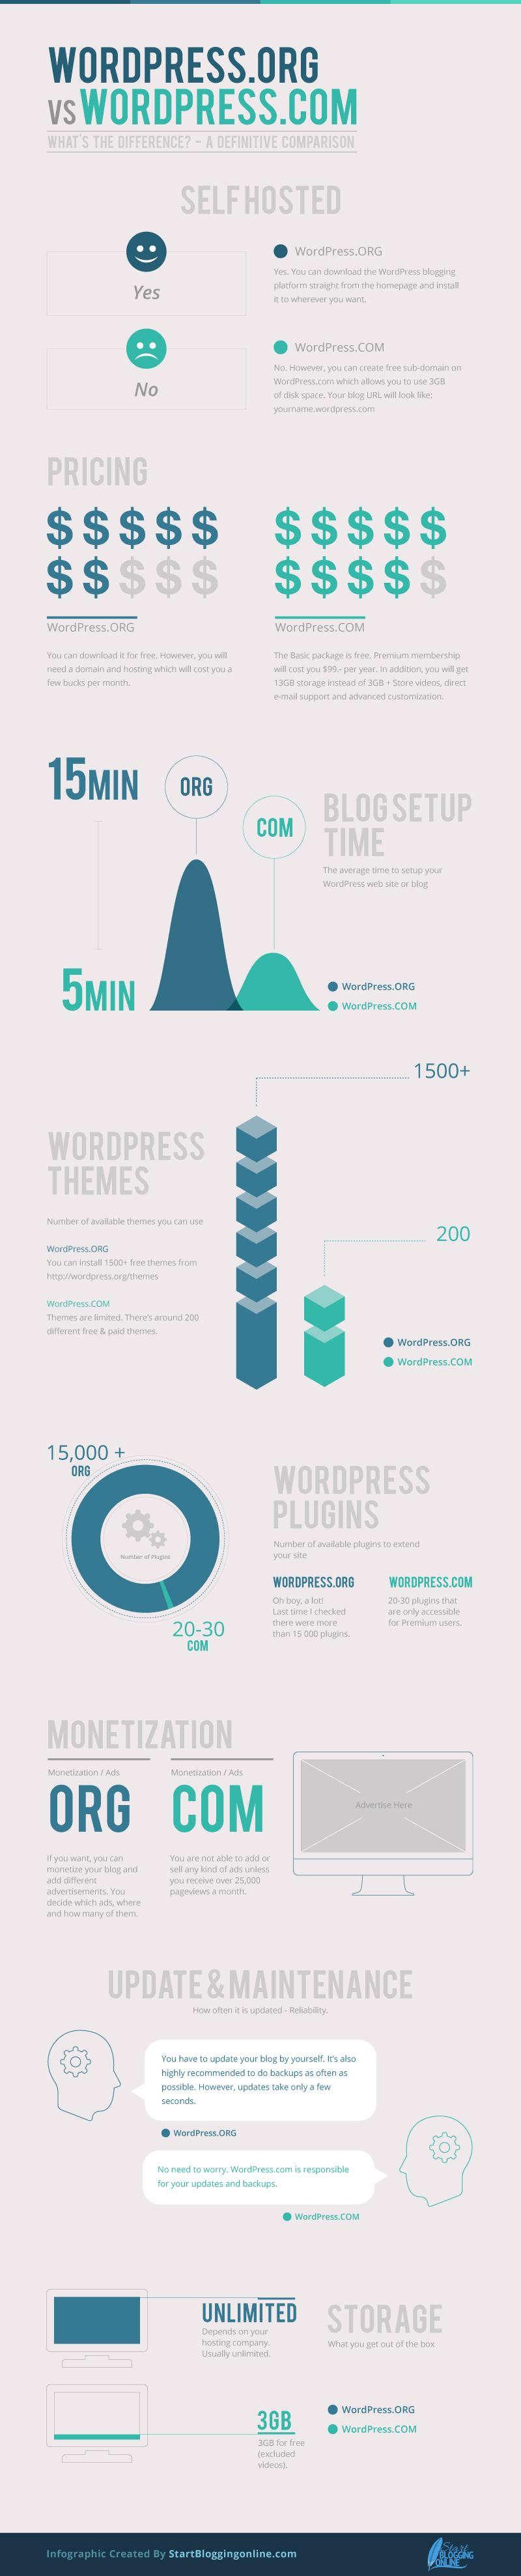 Difference between two WordPress